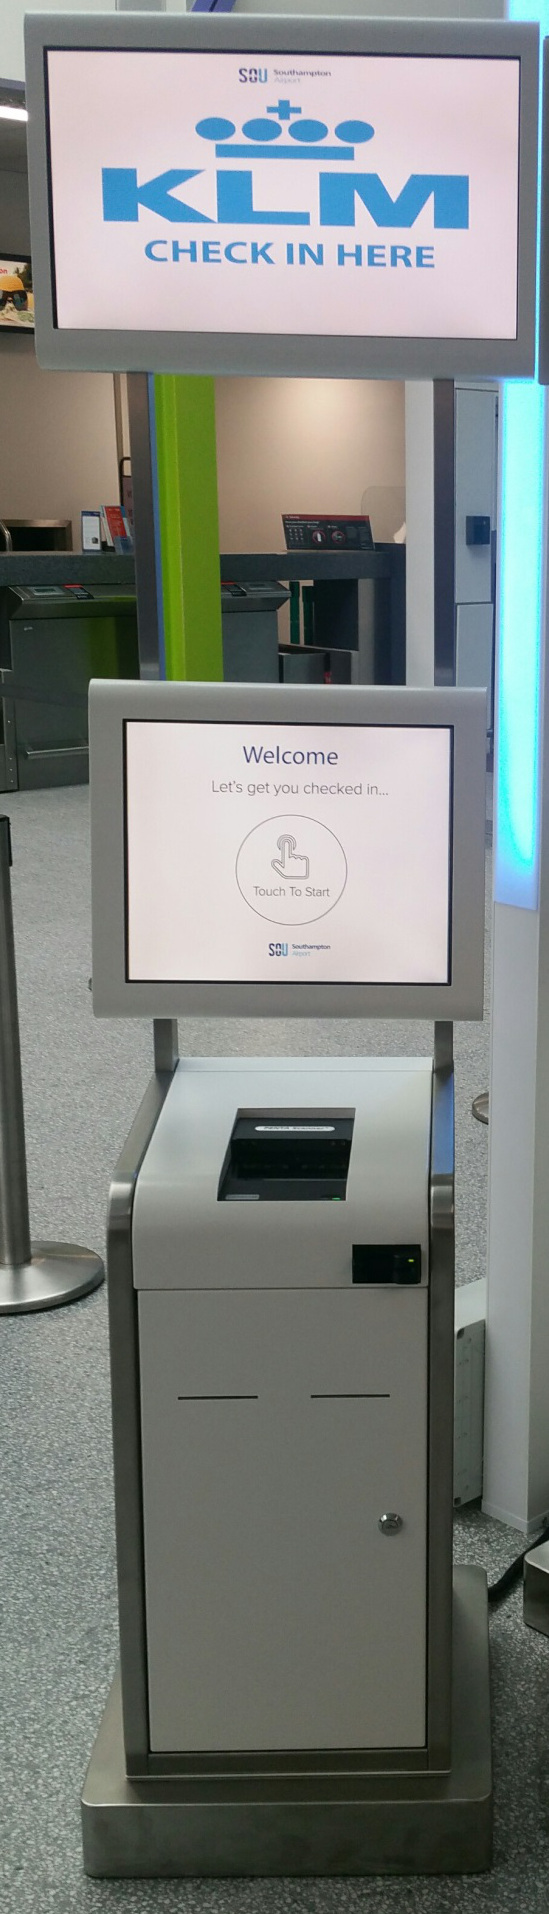 KLM self check in kiosk